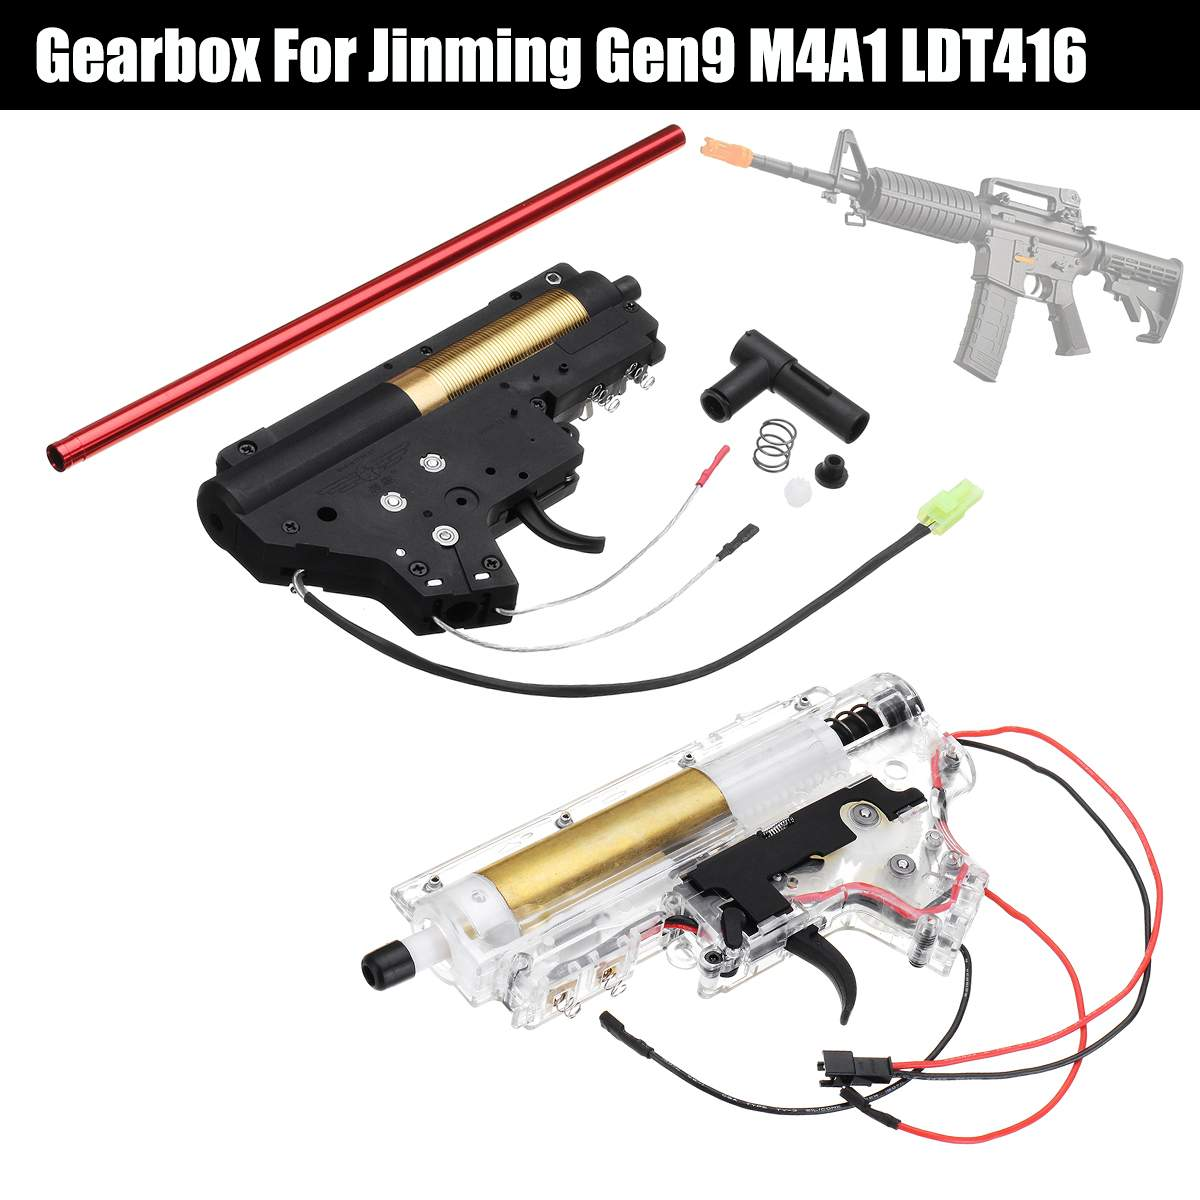 Upgrade Nylon No.2 Gearbox For JinMing 9th Gen9 M4A1/LDT416 Gel Ball For Blaster Toy